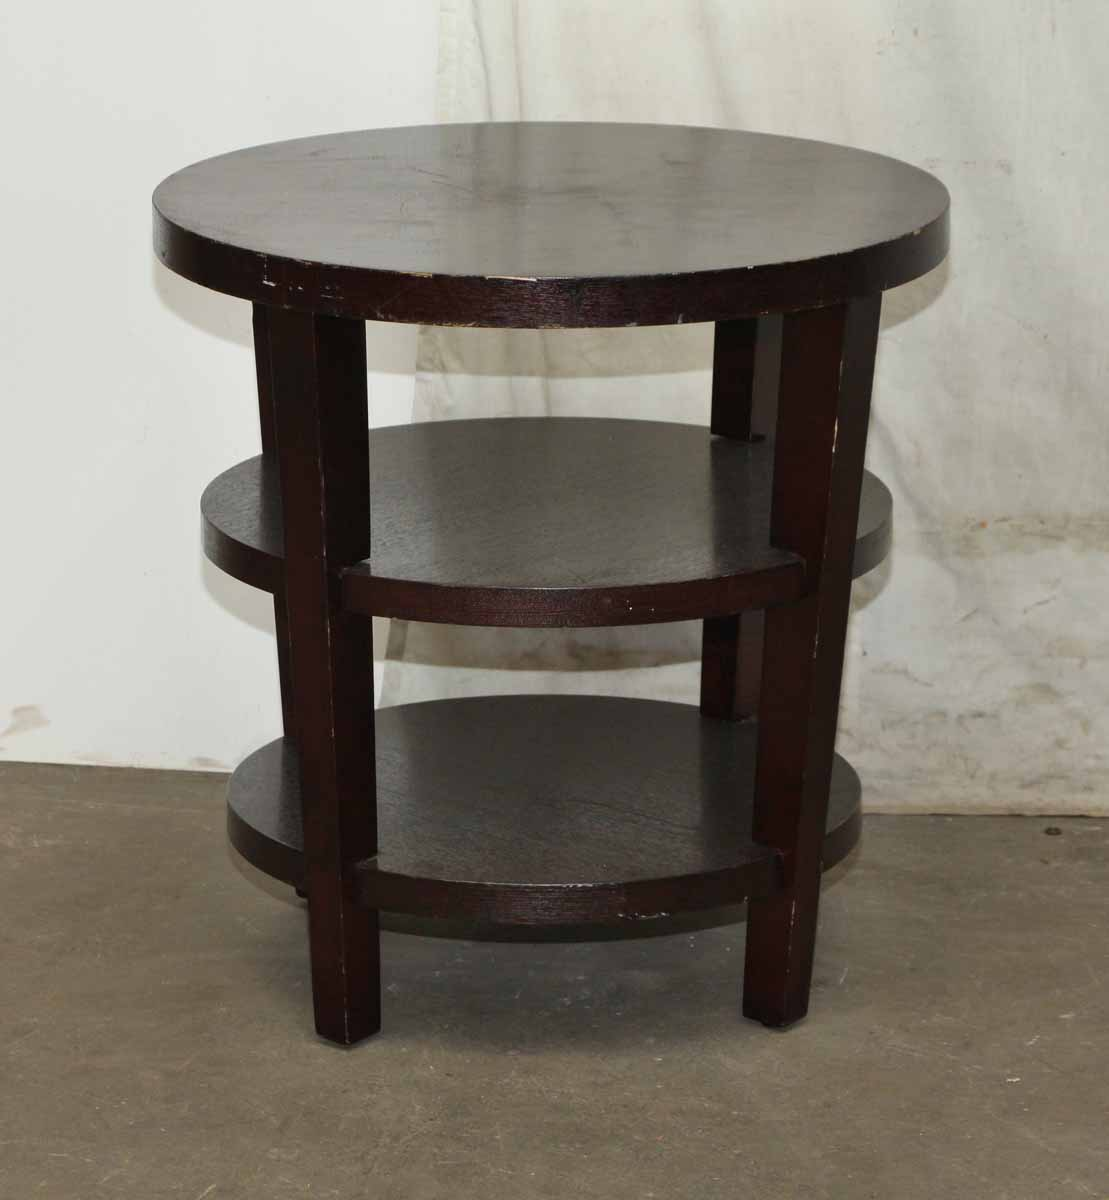 three tier round wood end tables pair olde good things. Black Bedroom Furniture Sets. Home Design Ideas